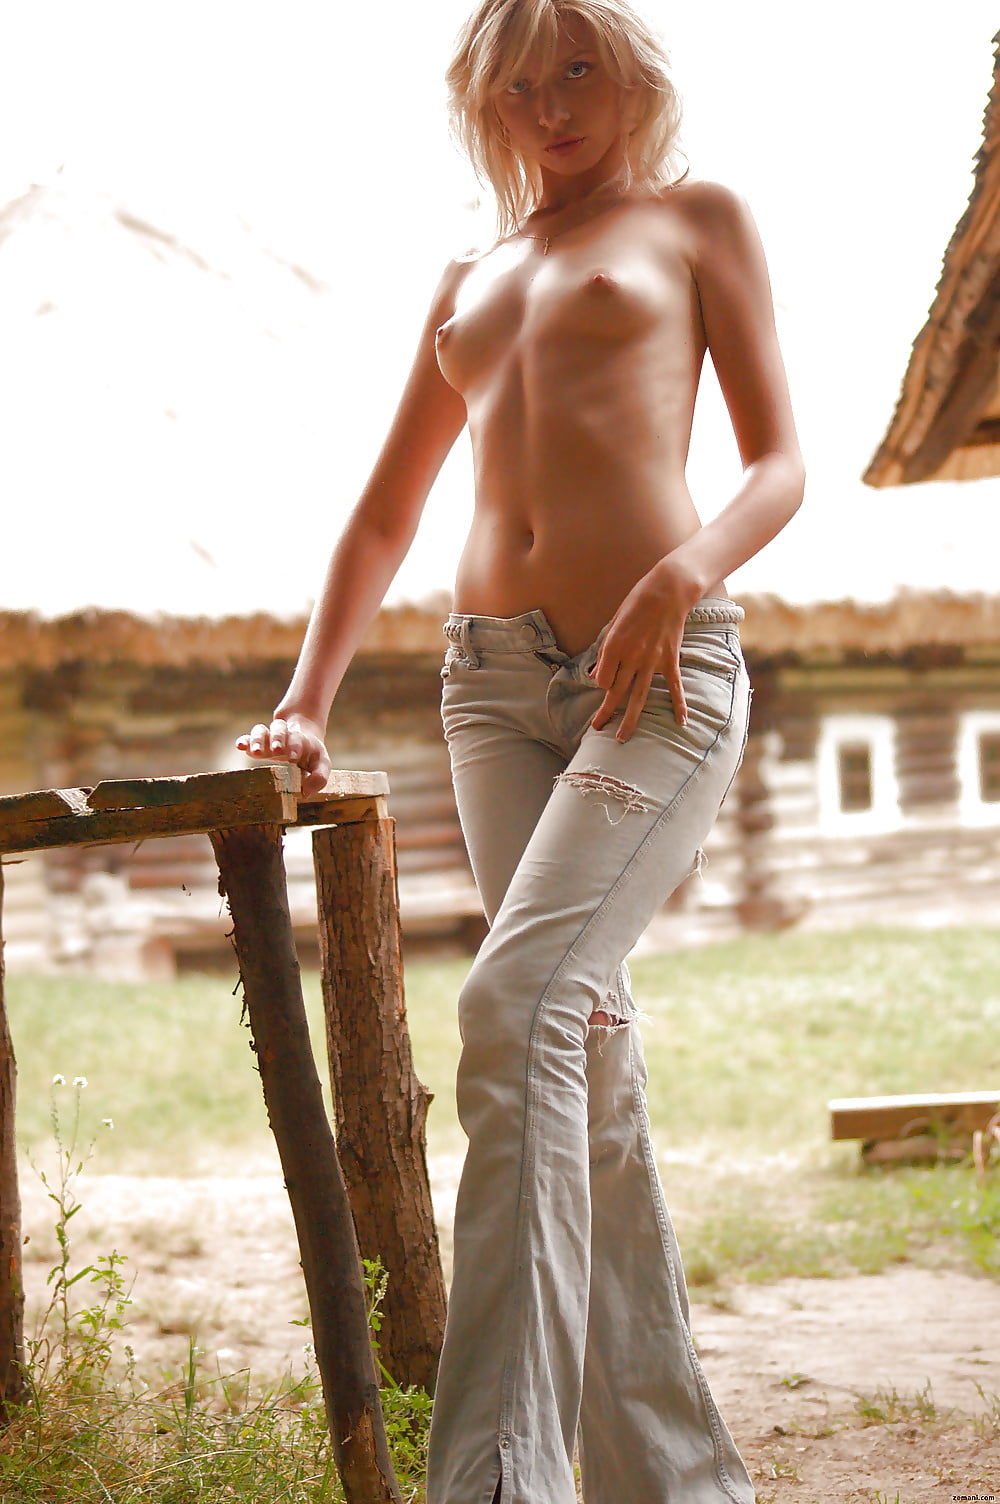 Bare foot girls topless — pic 3